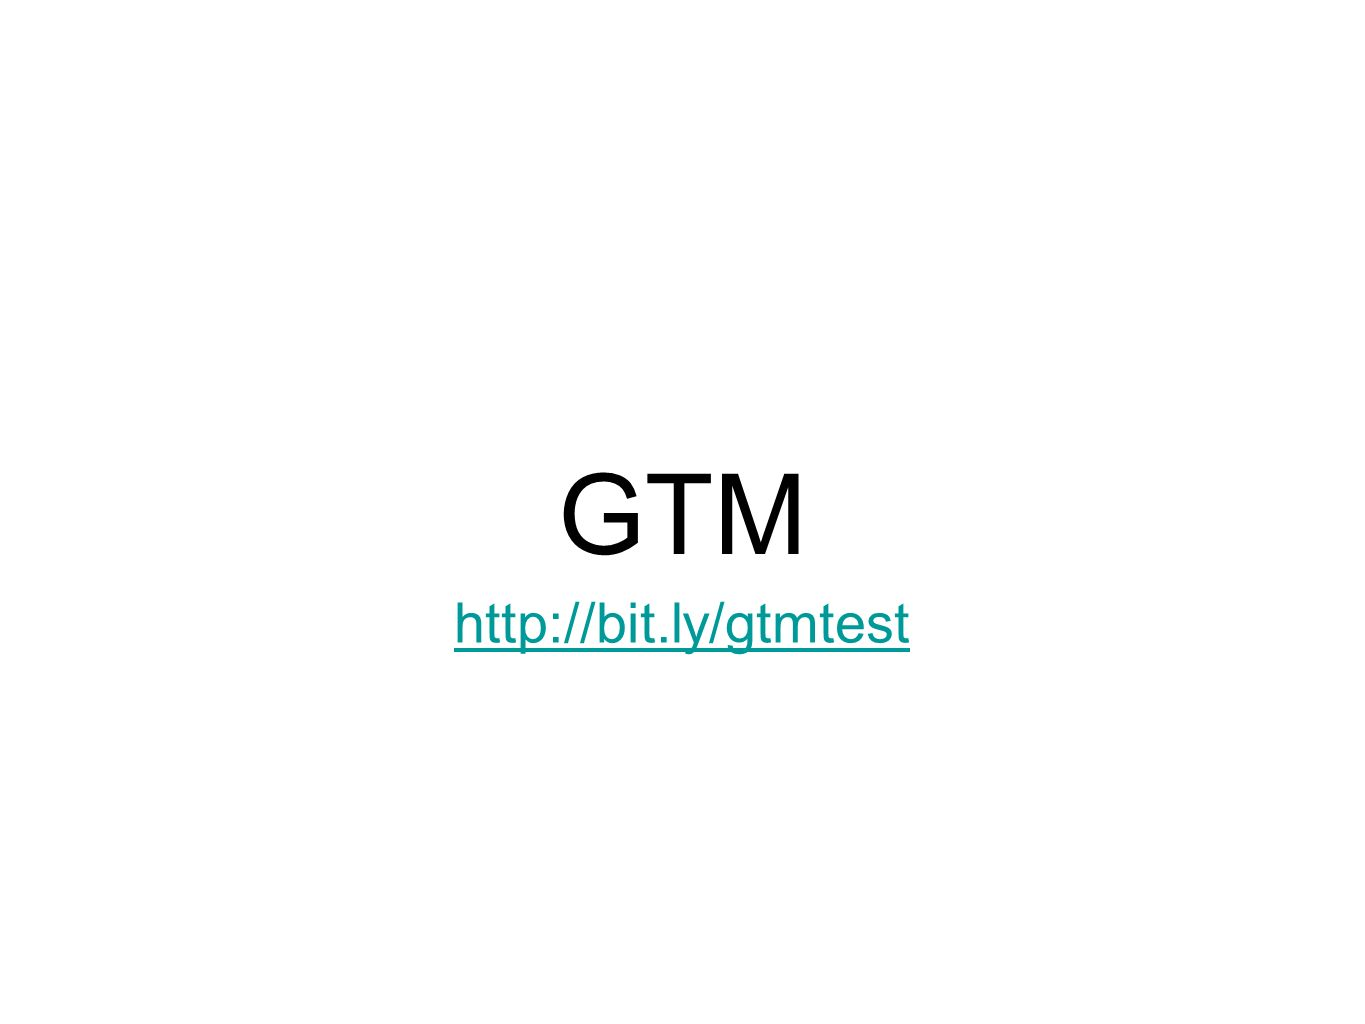 GTM http://bit.ly/gtmtest